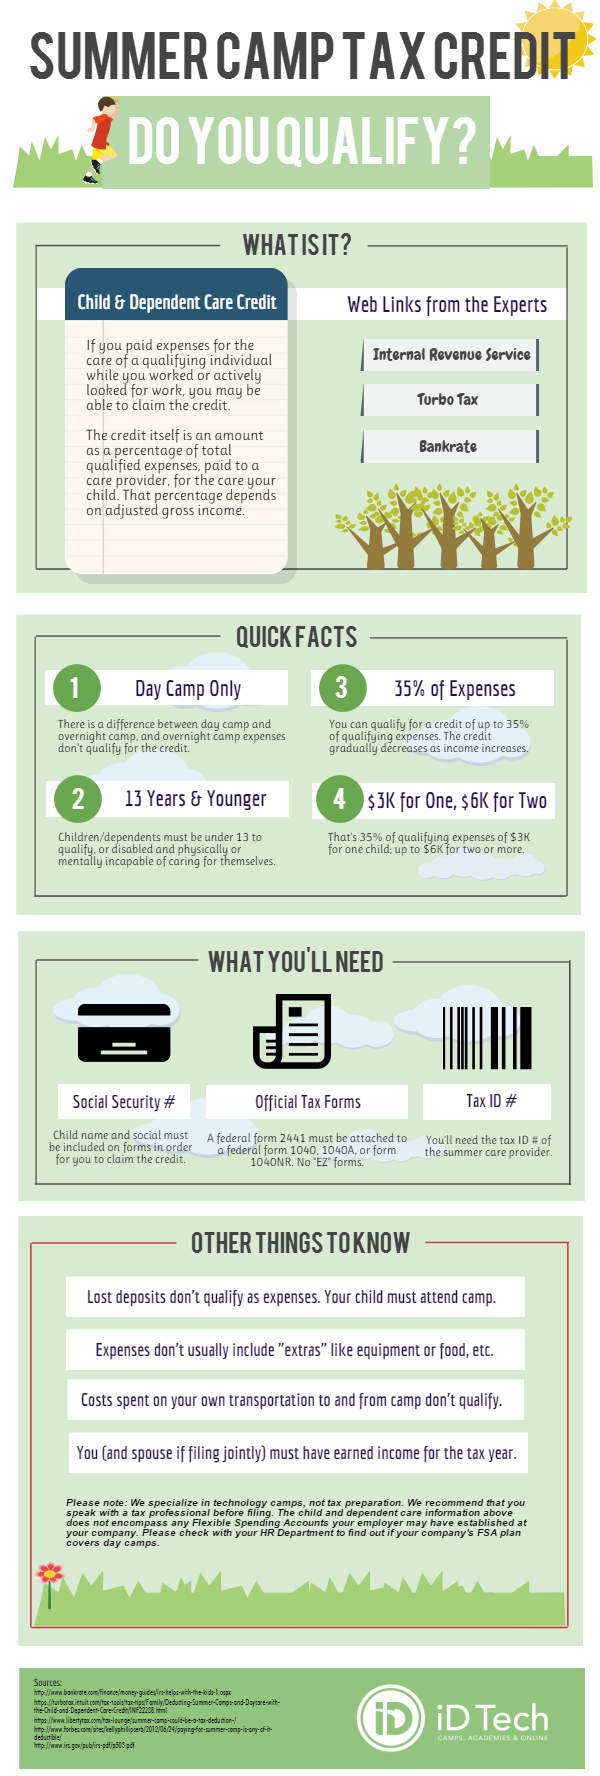 Summer Camp Tax Credit Infographic